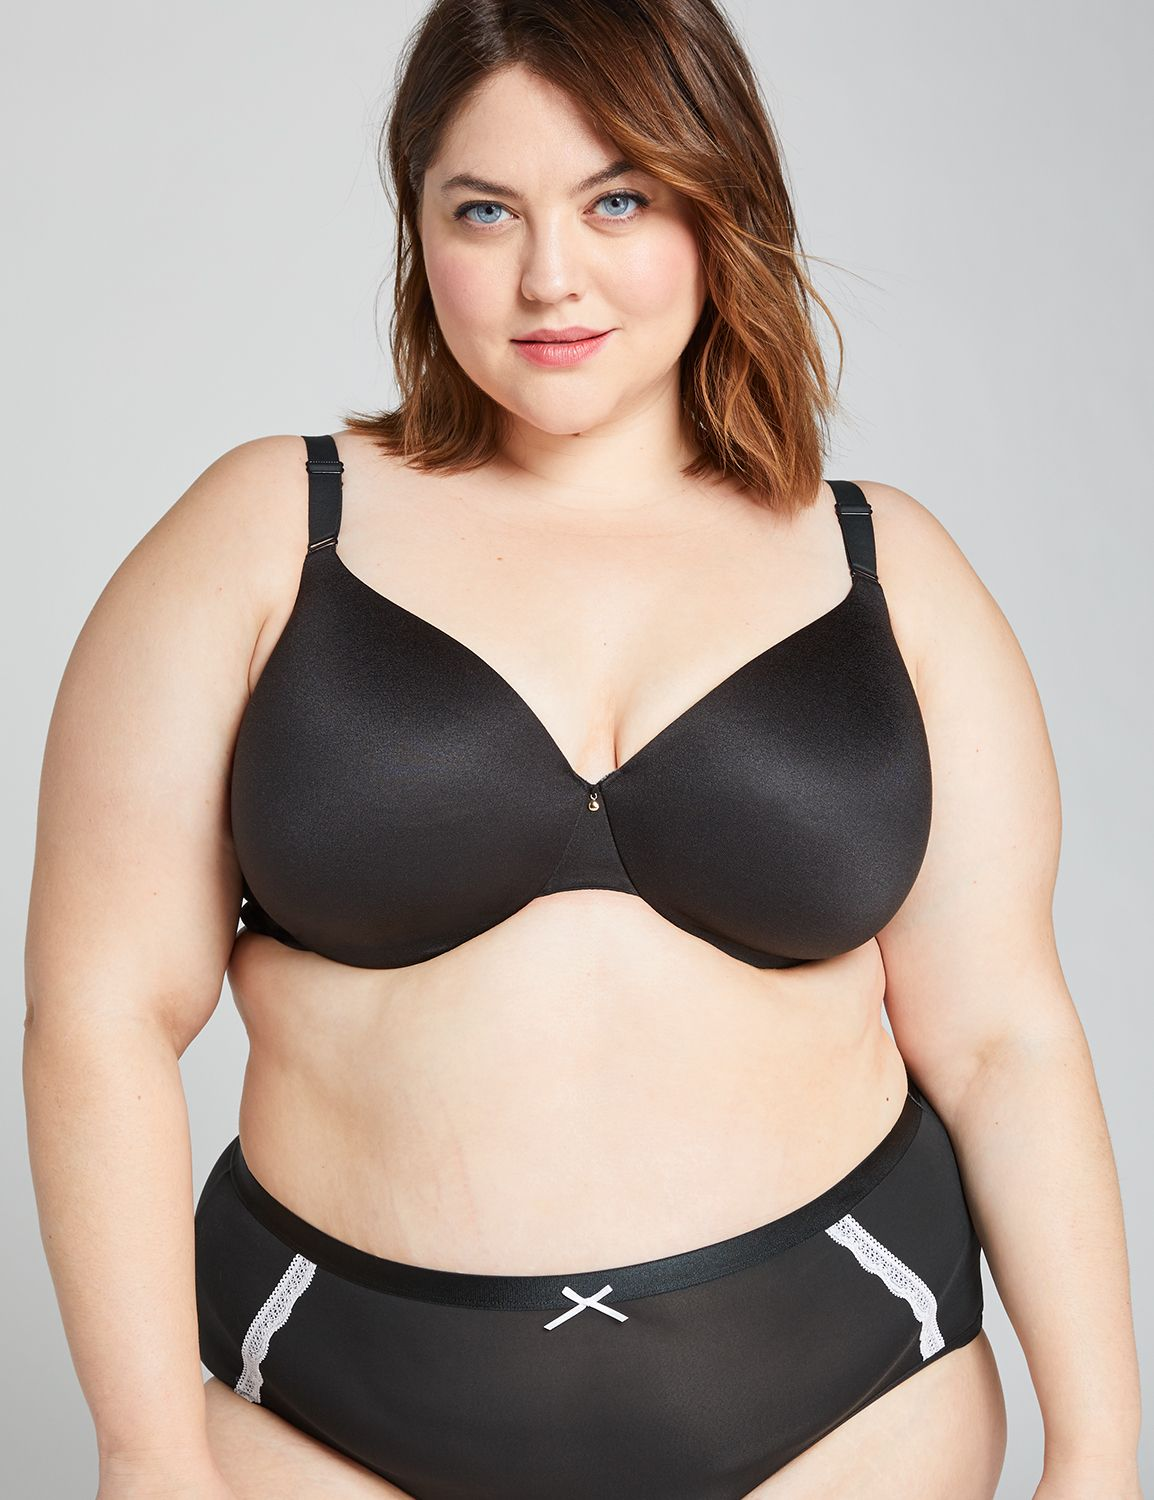 Lane Bryant Womens Invisible Backsmoother Lightly Lined Full Coverage Bra 42C Black